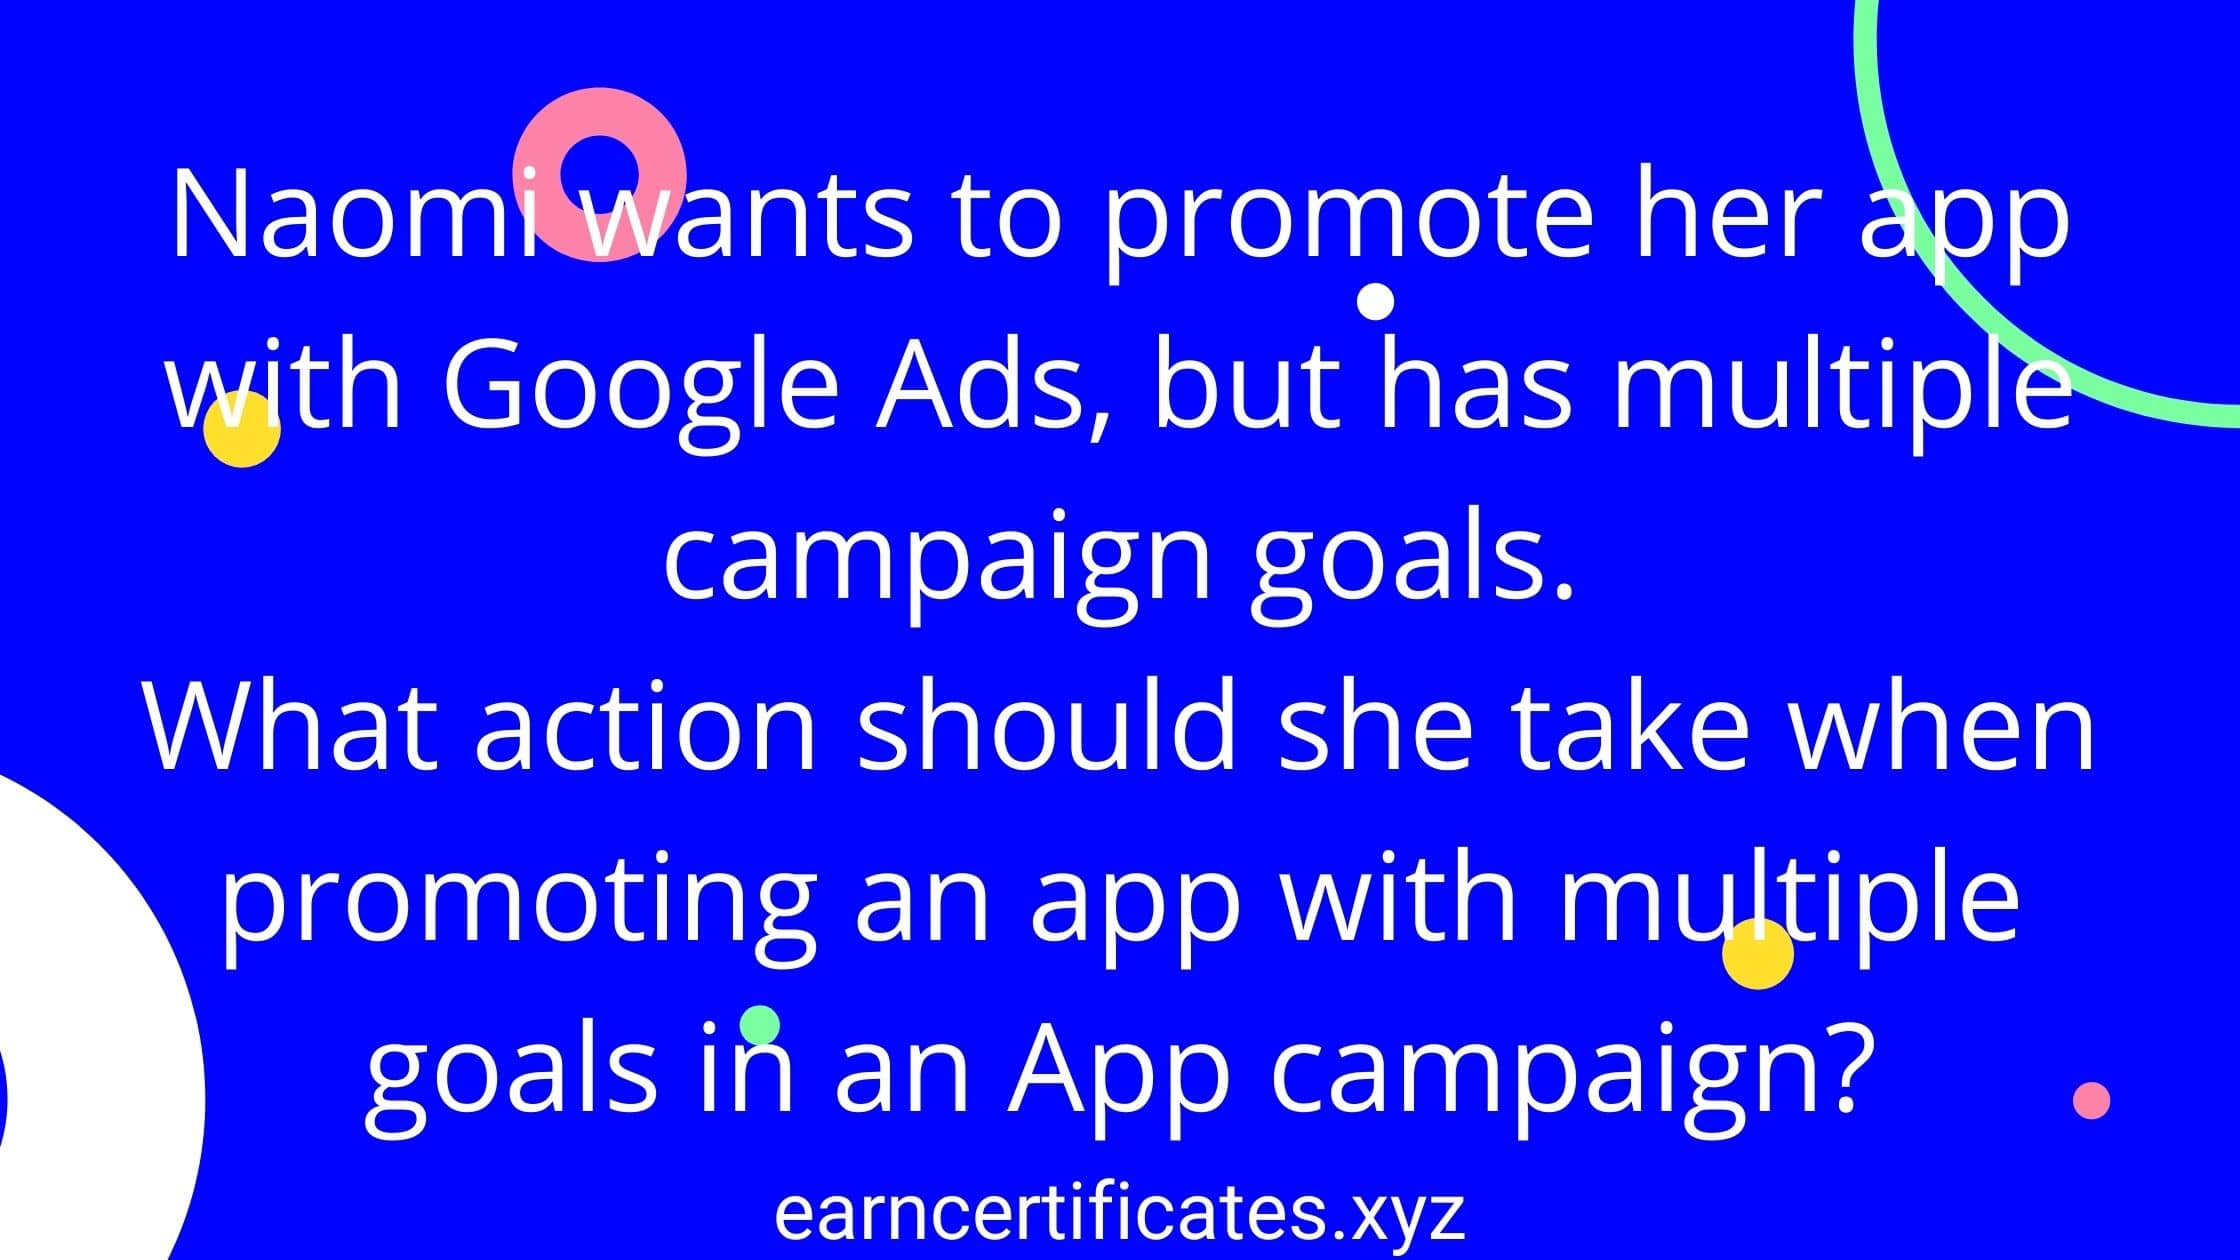 Naomi wants to promote her app with Google Ads, but has multiple campaign goals. What action should she take when promoting an app with multiple goals in an App campaign?